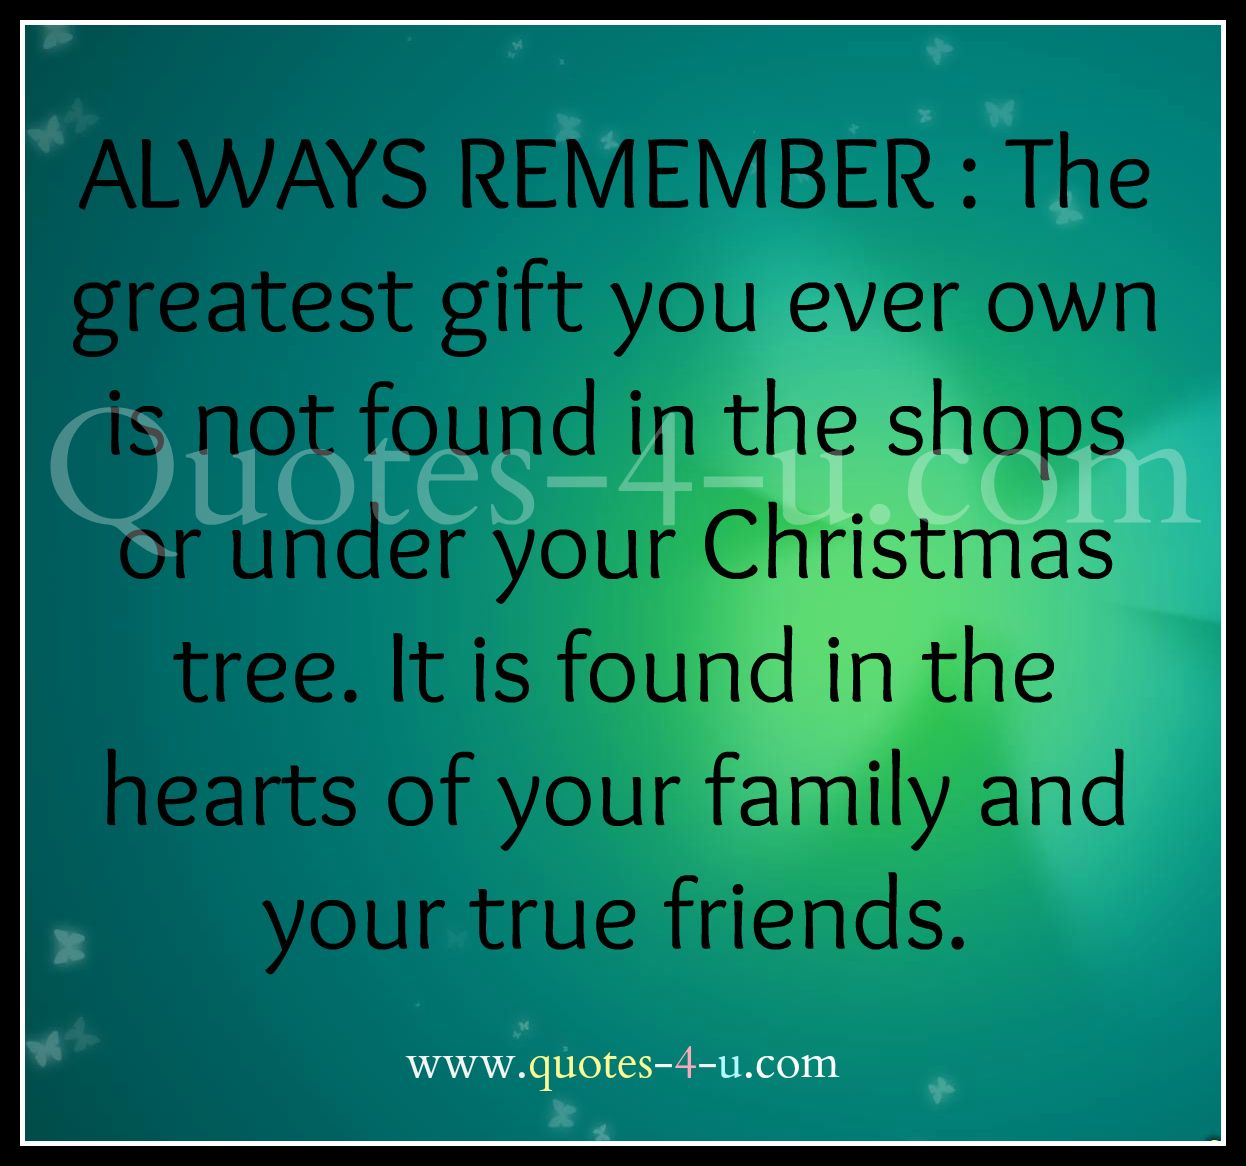 The Greatest Gift You Can Ever Own Is Not Found Under Your Christmas Tree.  Its Found In The Hearts Of Your Family And Your True Friends